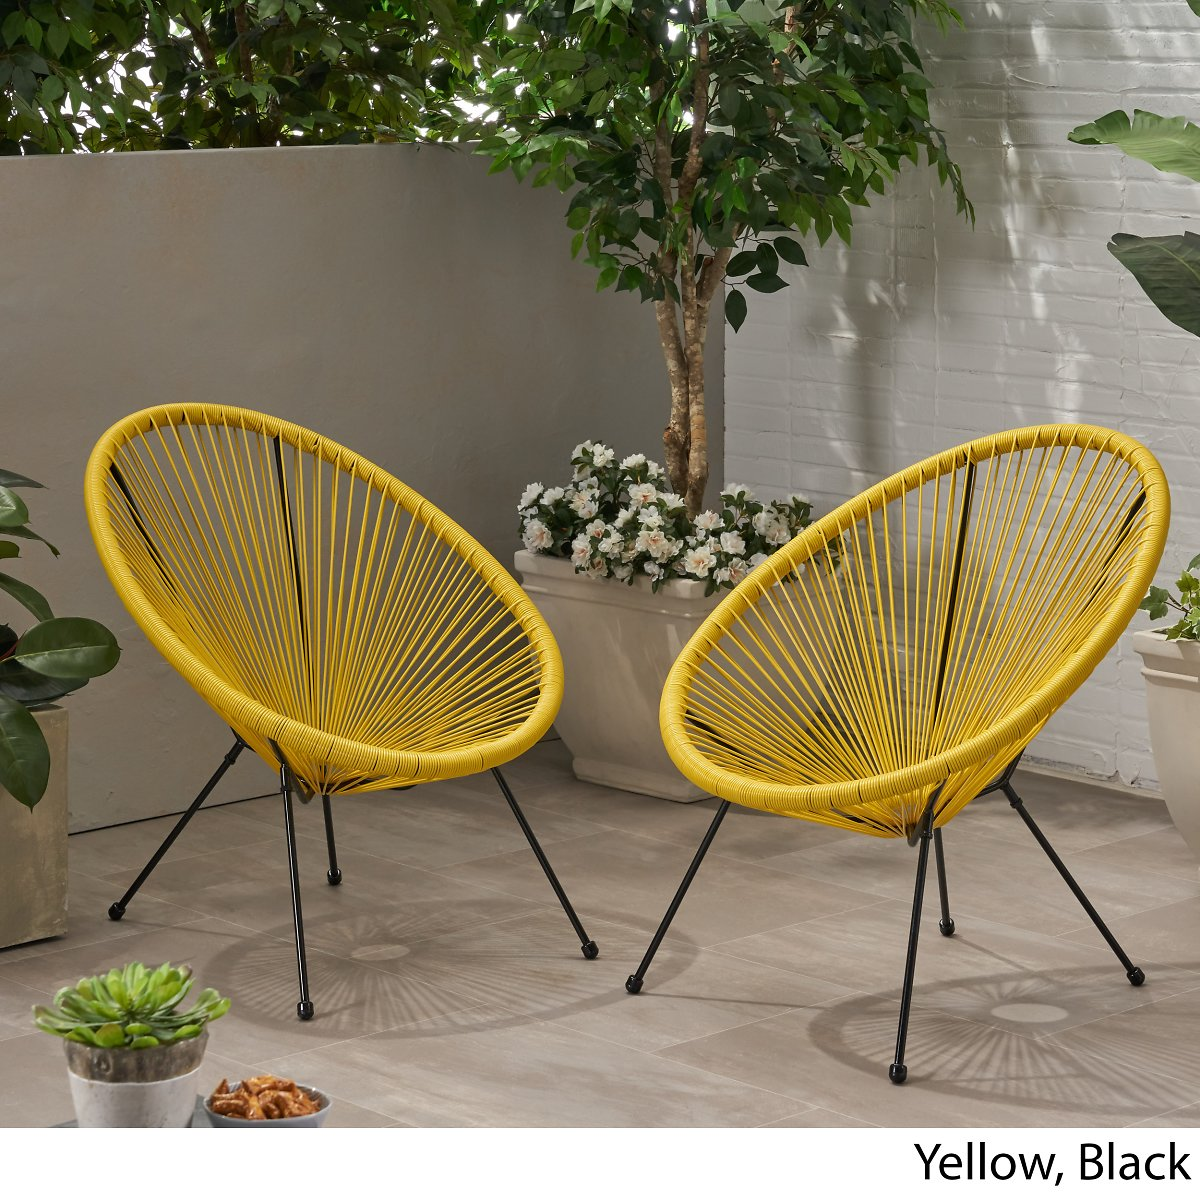 Yanais Outdoor Hammock Weave Chair with Steel Frame, Set of 2, Black